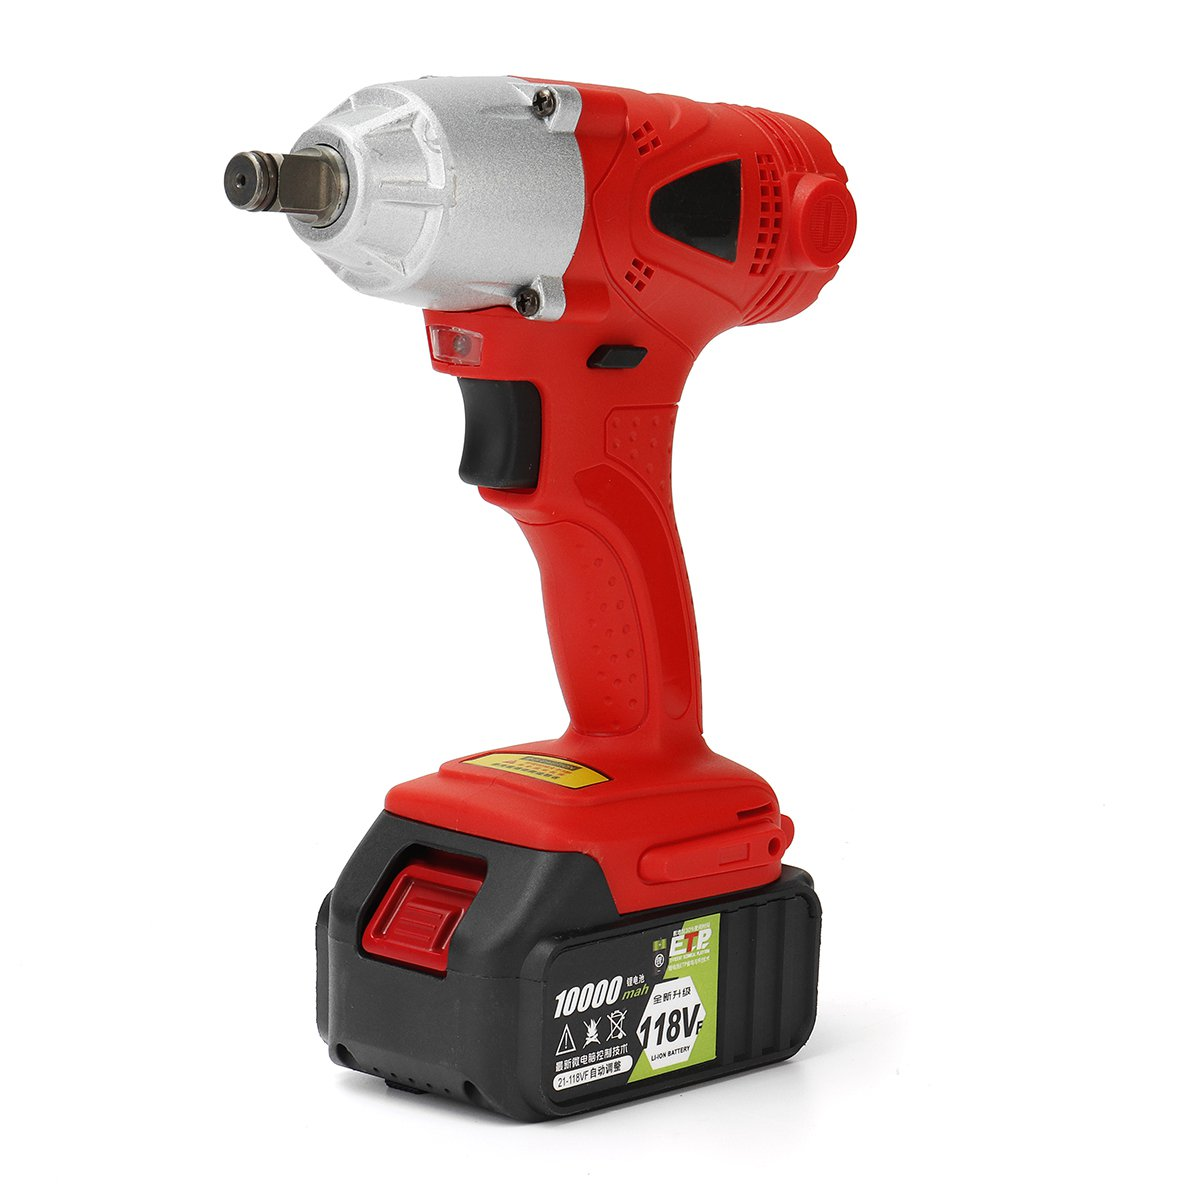 1 2 21v 118vf Electric Impact Wrench Cordless High Torque Tool 10000mah 9 Of 11